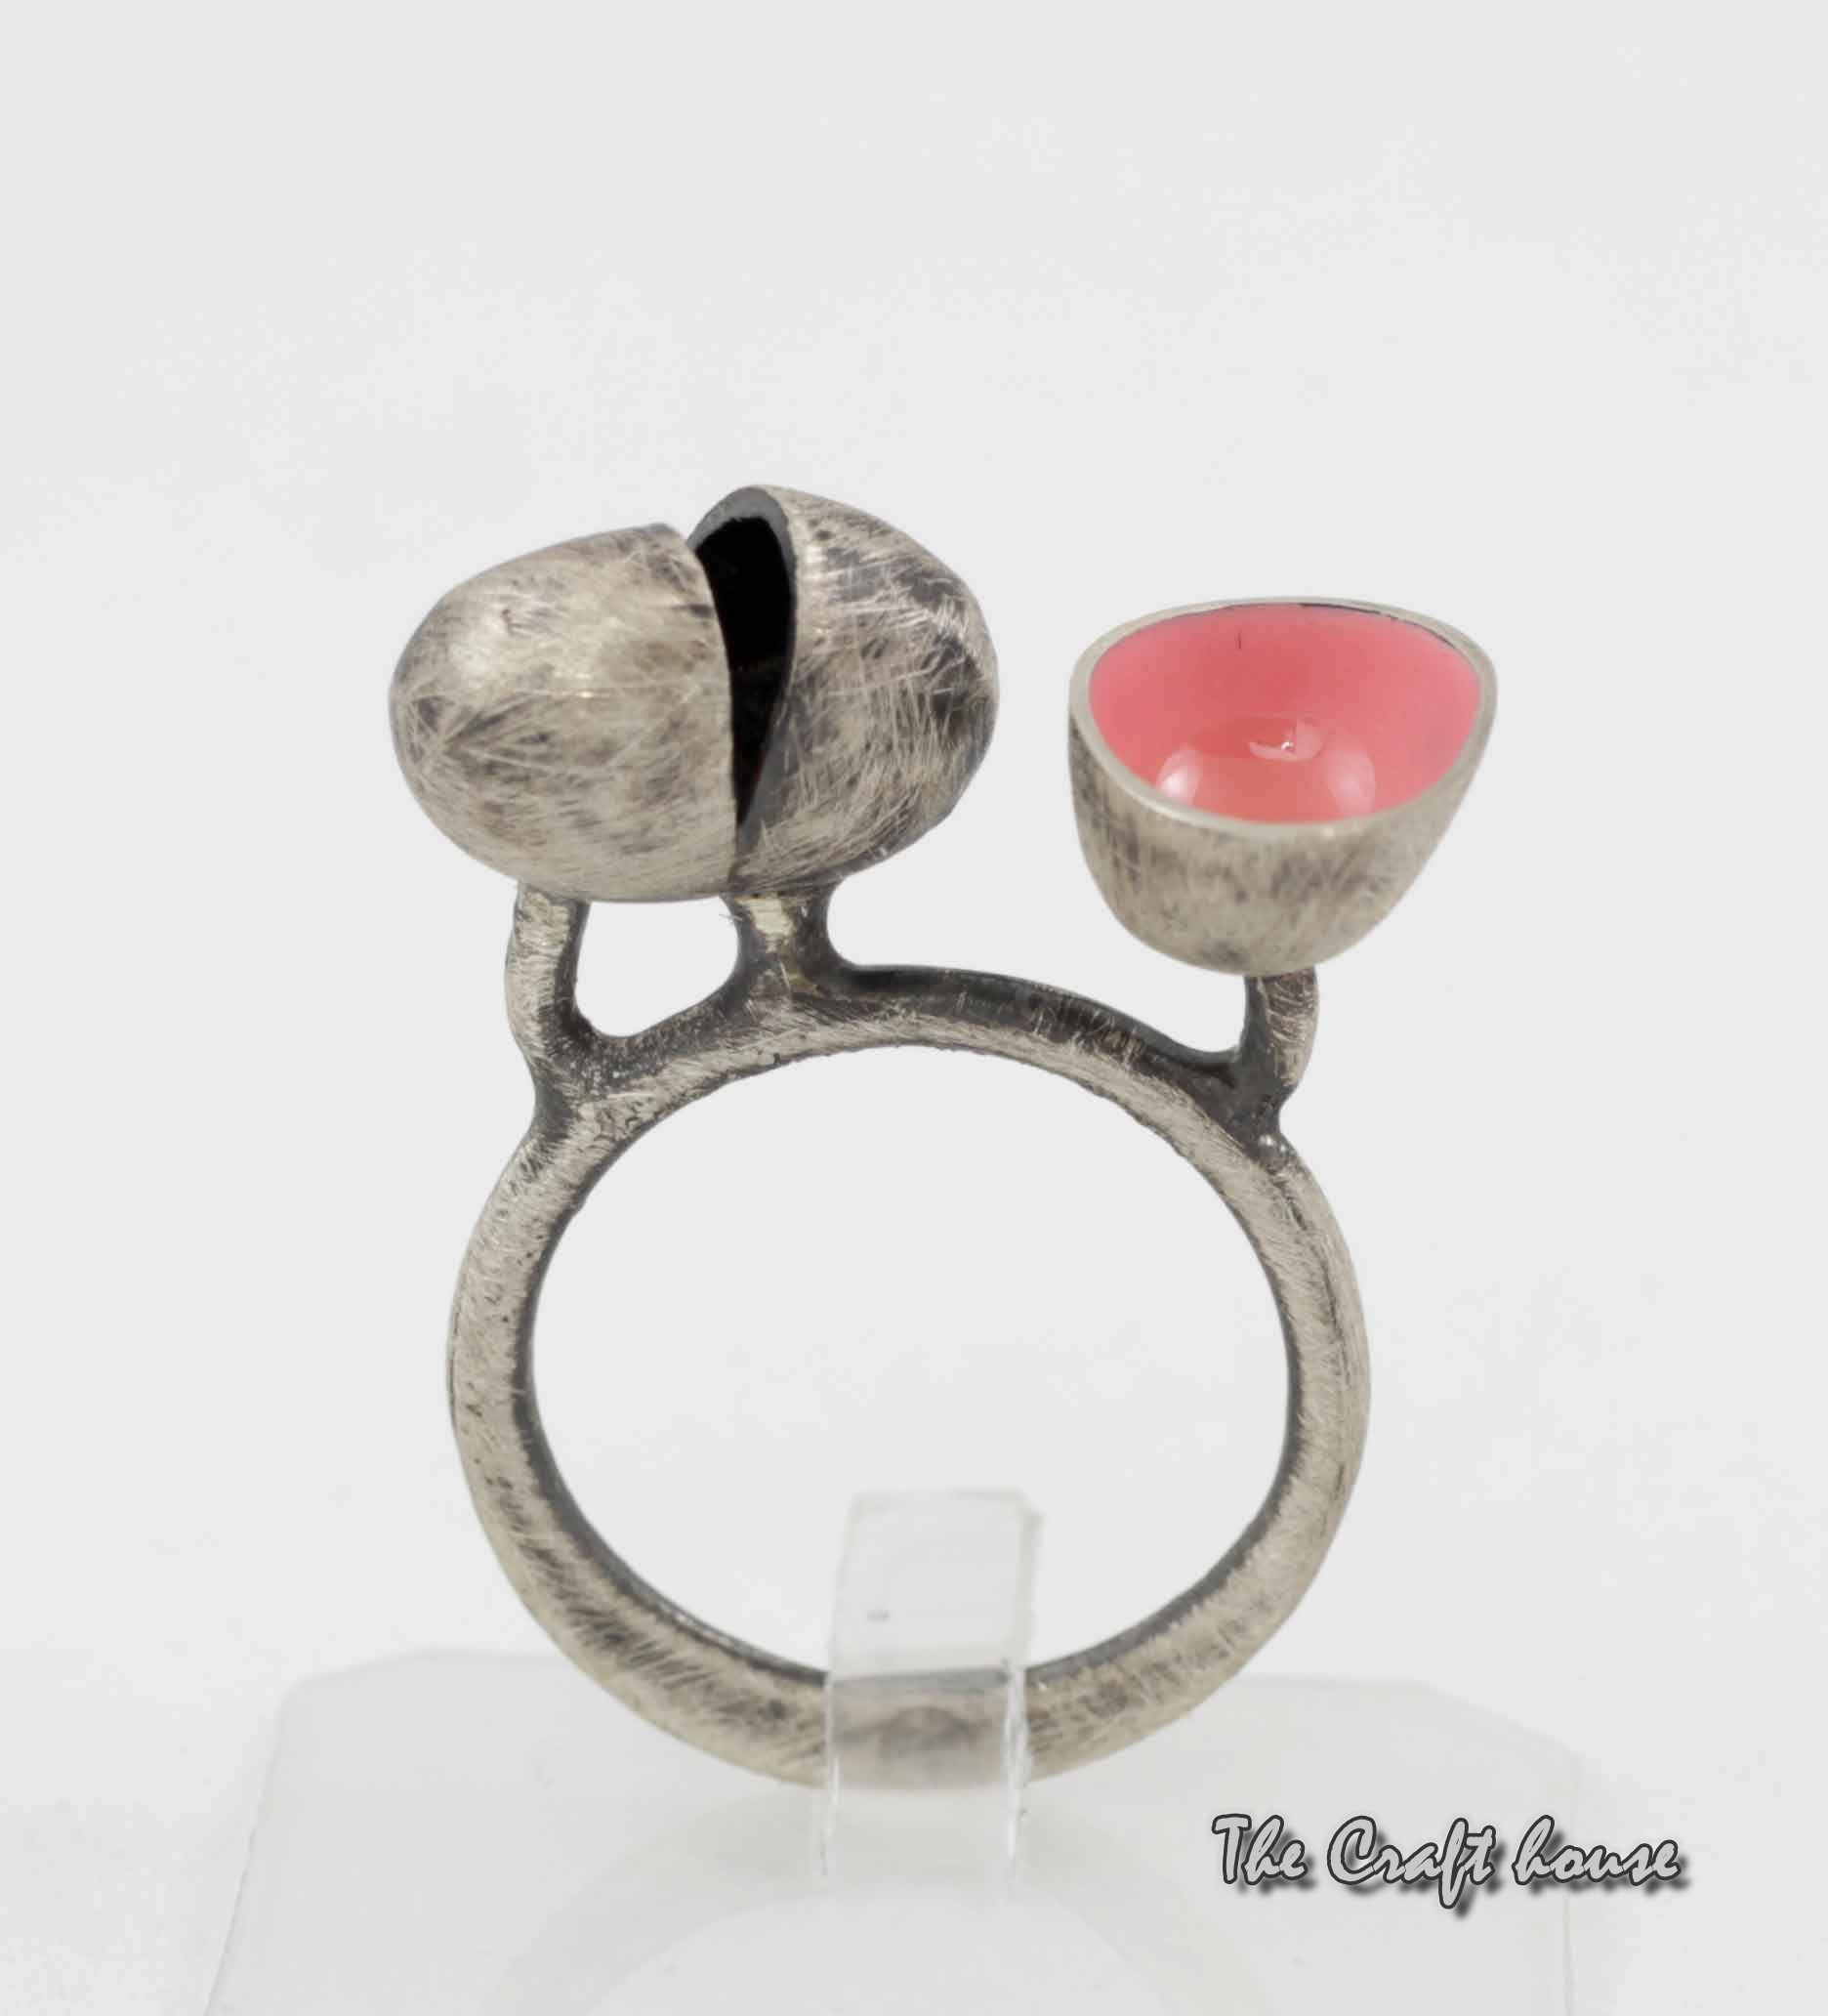 Silver ring with pink enamel